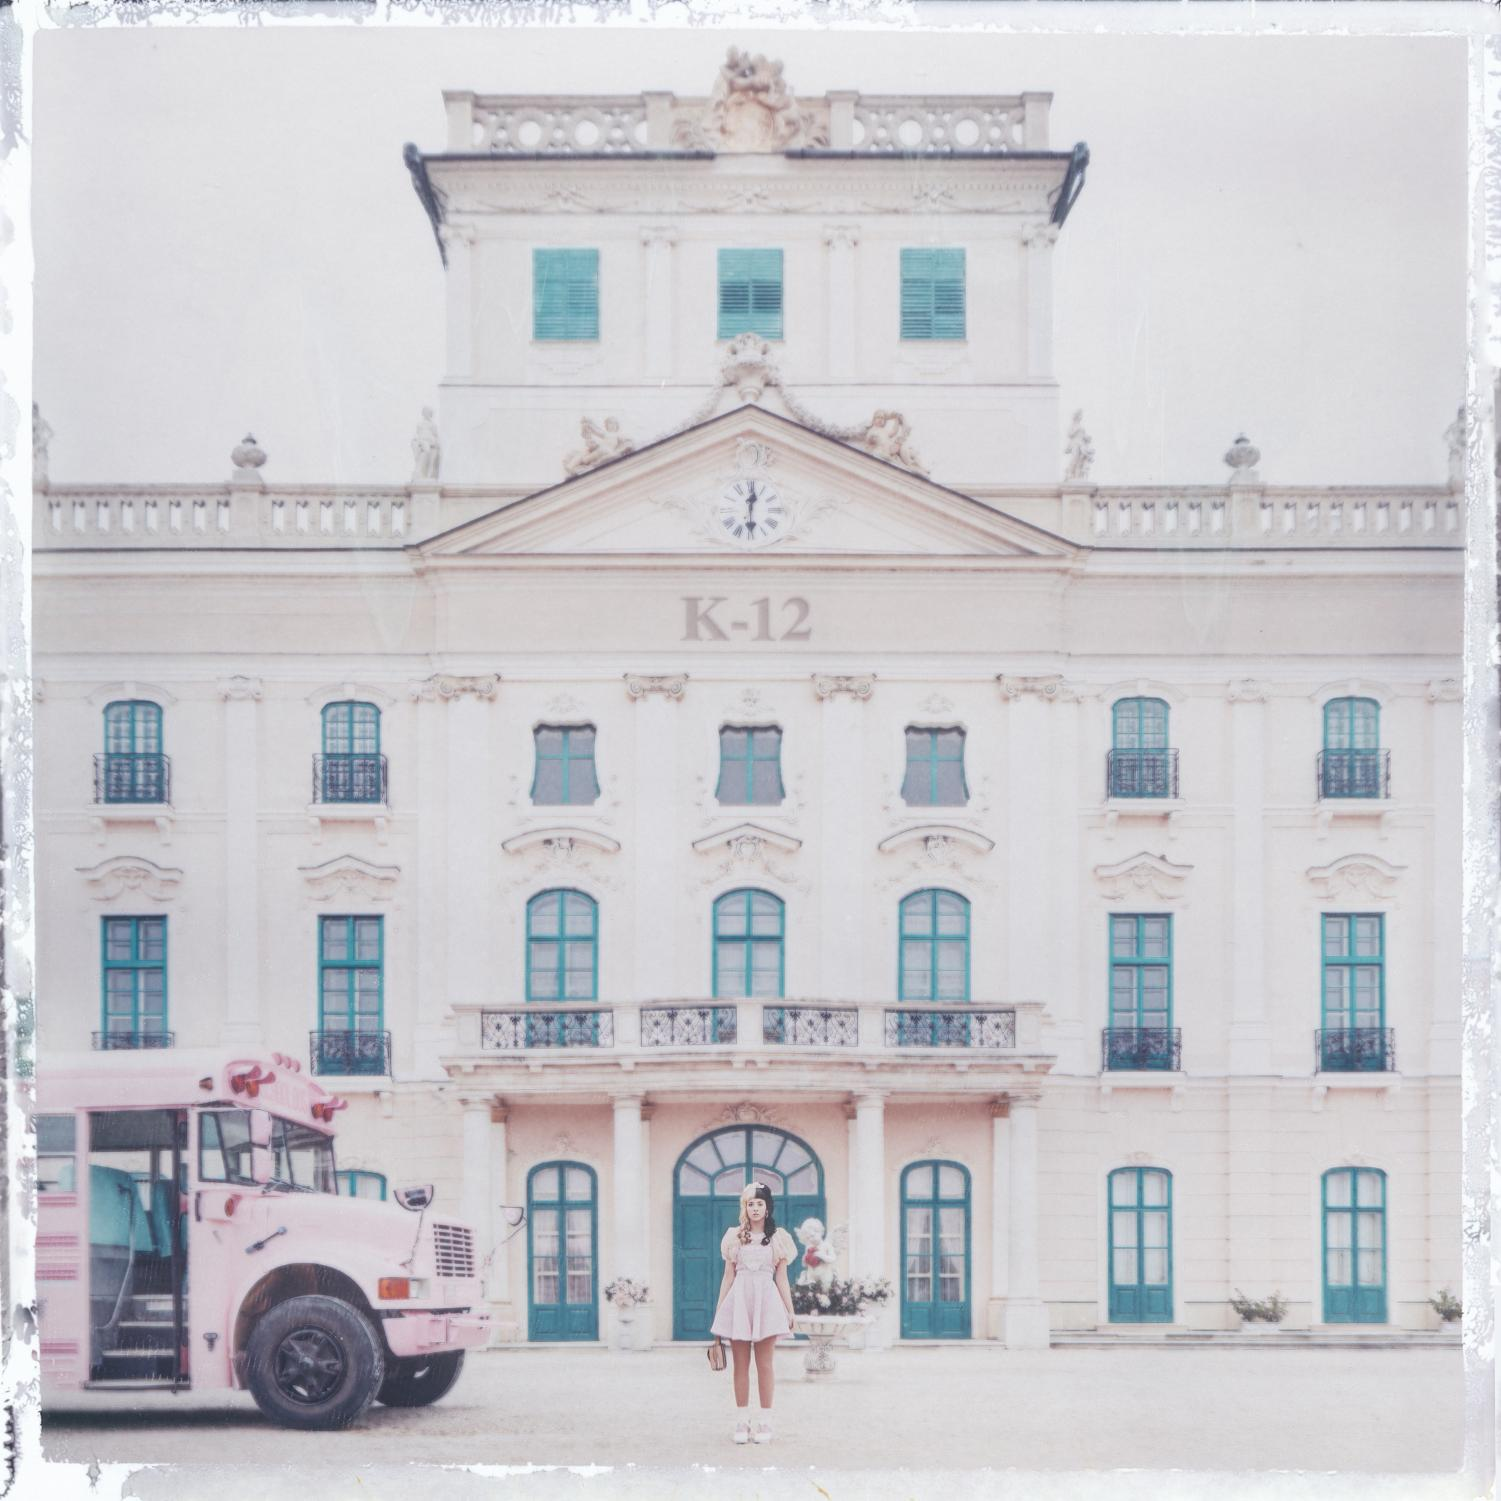 """After four years of silence, singer-songwriter, Melanie Martinez, has released her sophomore album """"K-12"""" and with it, a 90-minute feature film. The almost hour-and-a-half-long film offers breathtaking visuals and stunning choreography that flows perfectly with the music."""